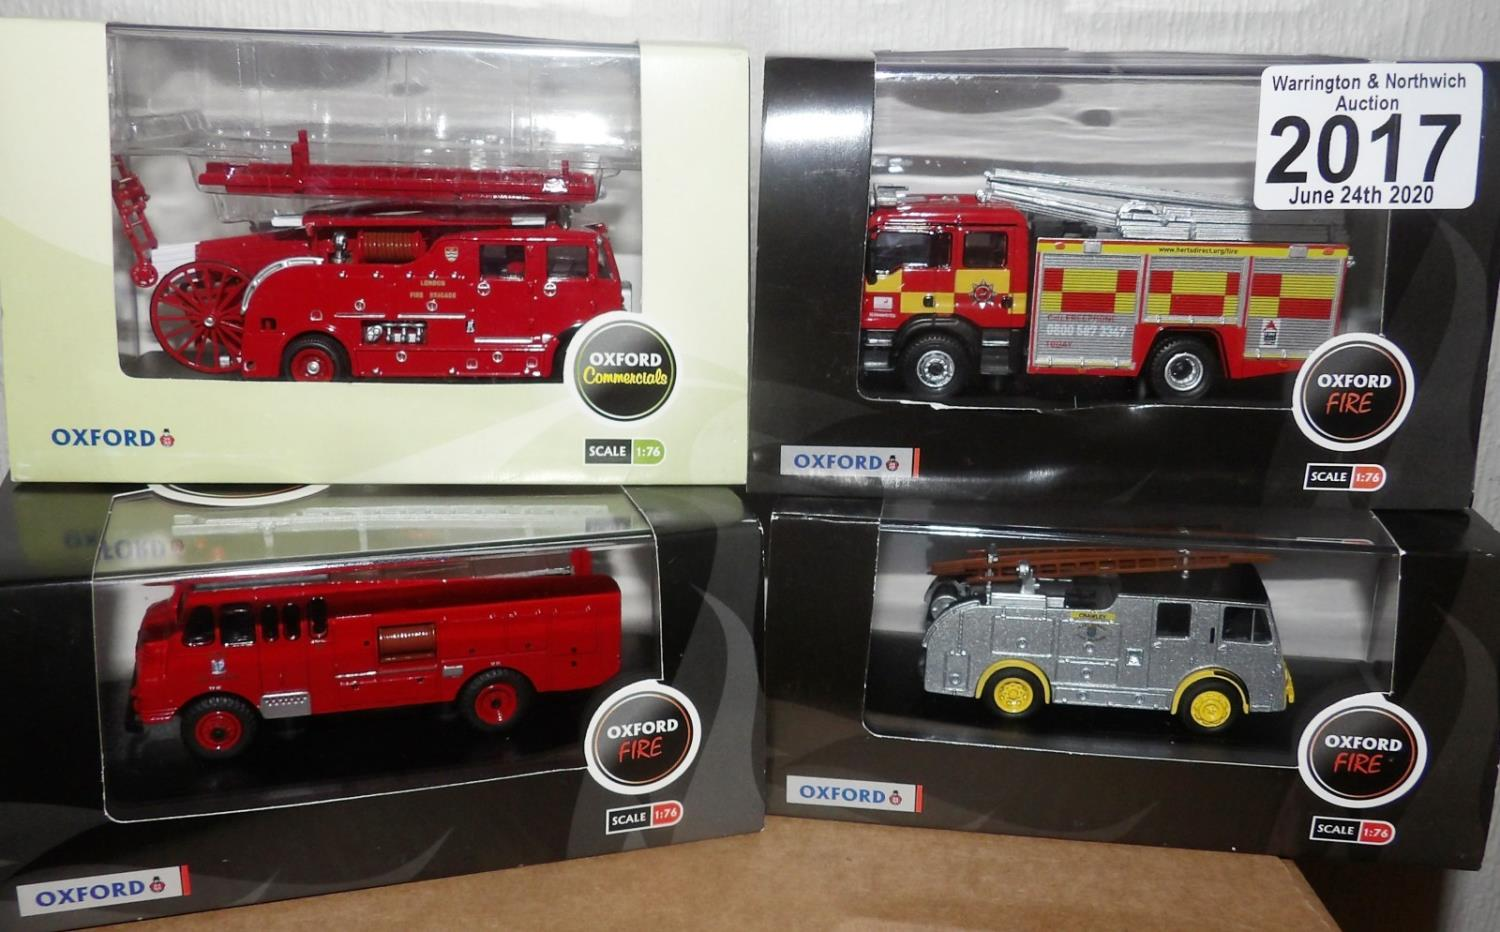 Lot 2017 - Oxford 1.76 Scale x 4 Mixed Fire Engines. P&P Group 2 (£18+VAT for the first lot and £2+VAT for